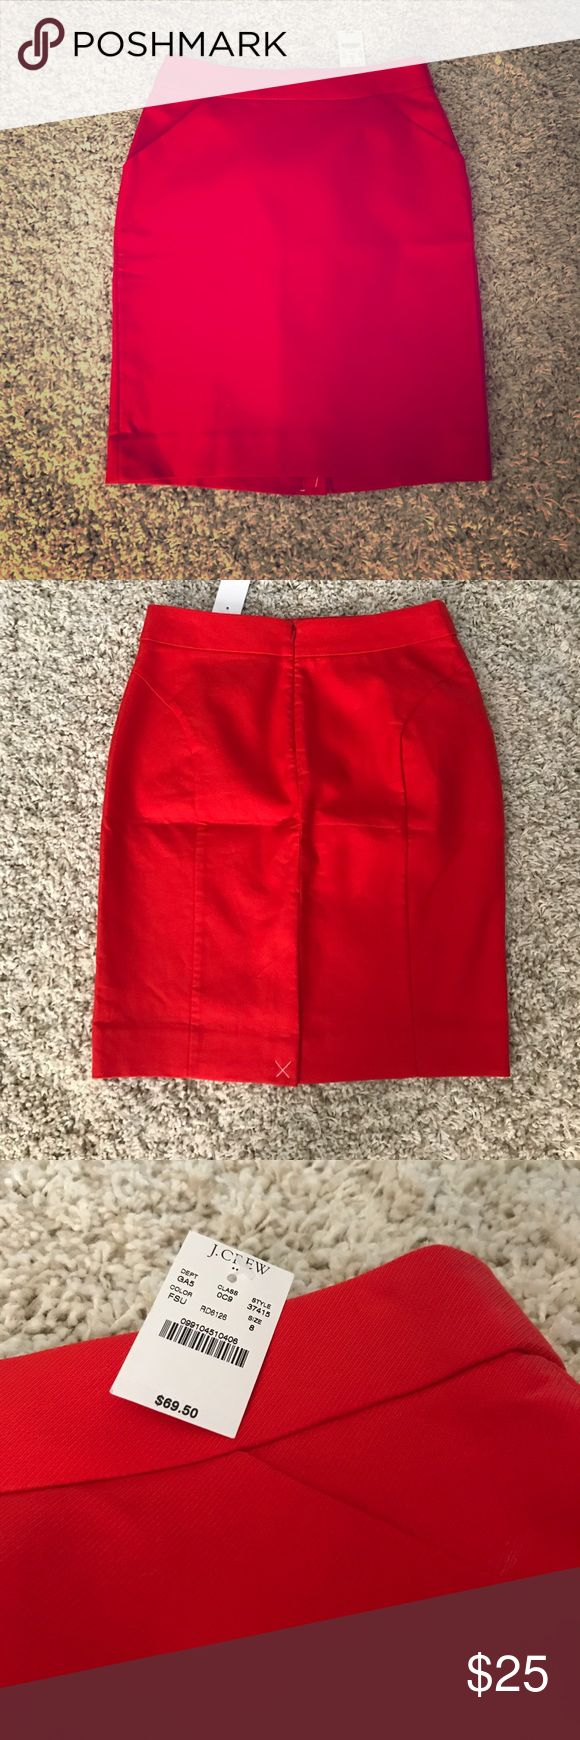 """J. Crew red pencil skirt size 8 J. Crew red pencil skirt size 8.  New with tags.  32"""" waiste; 22"""" length.  Slit in back 100% cotton. J. Crew Skirts Midi"""